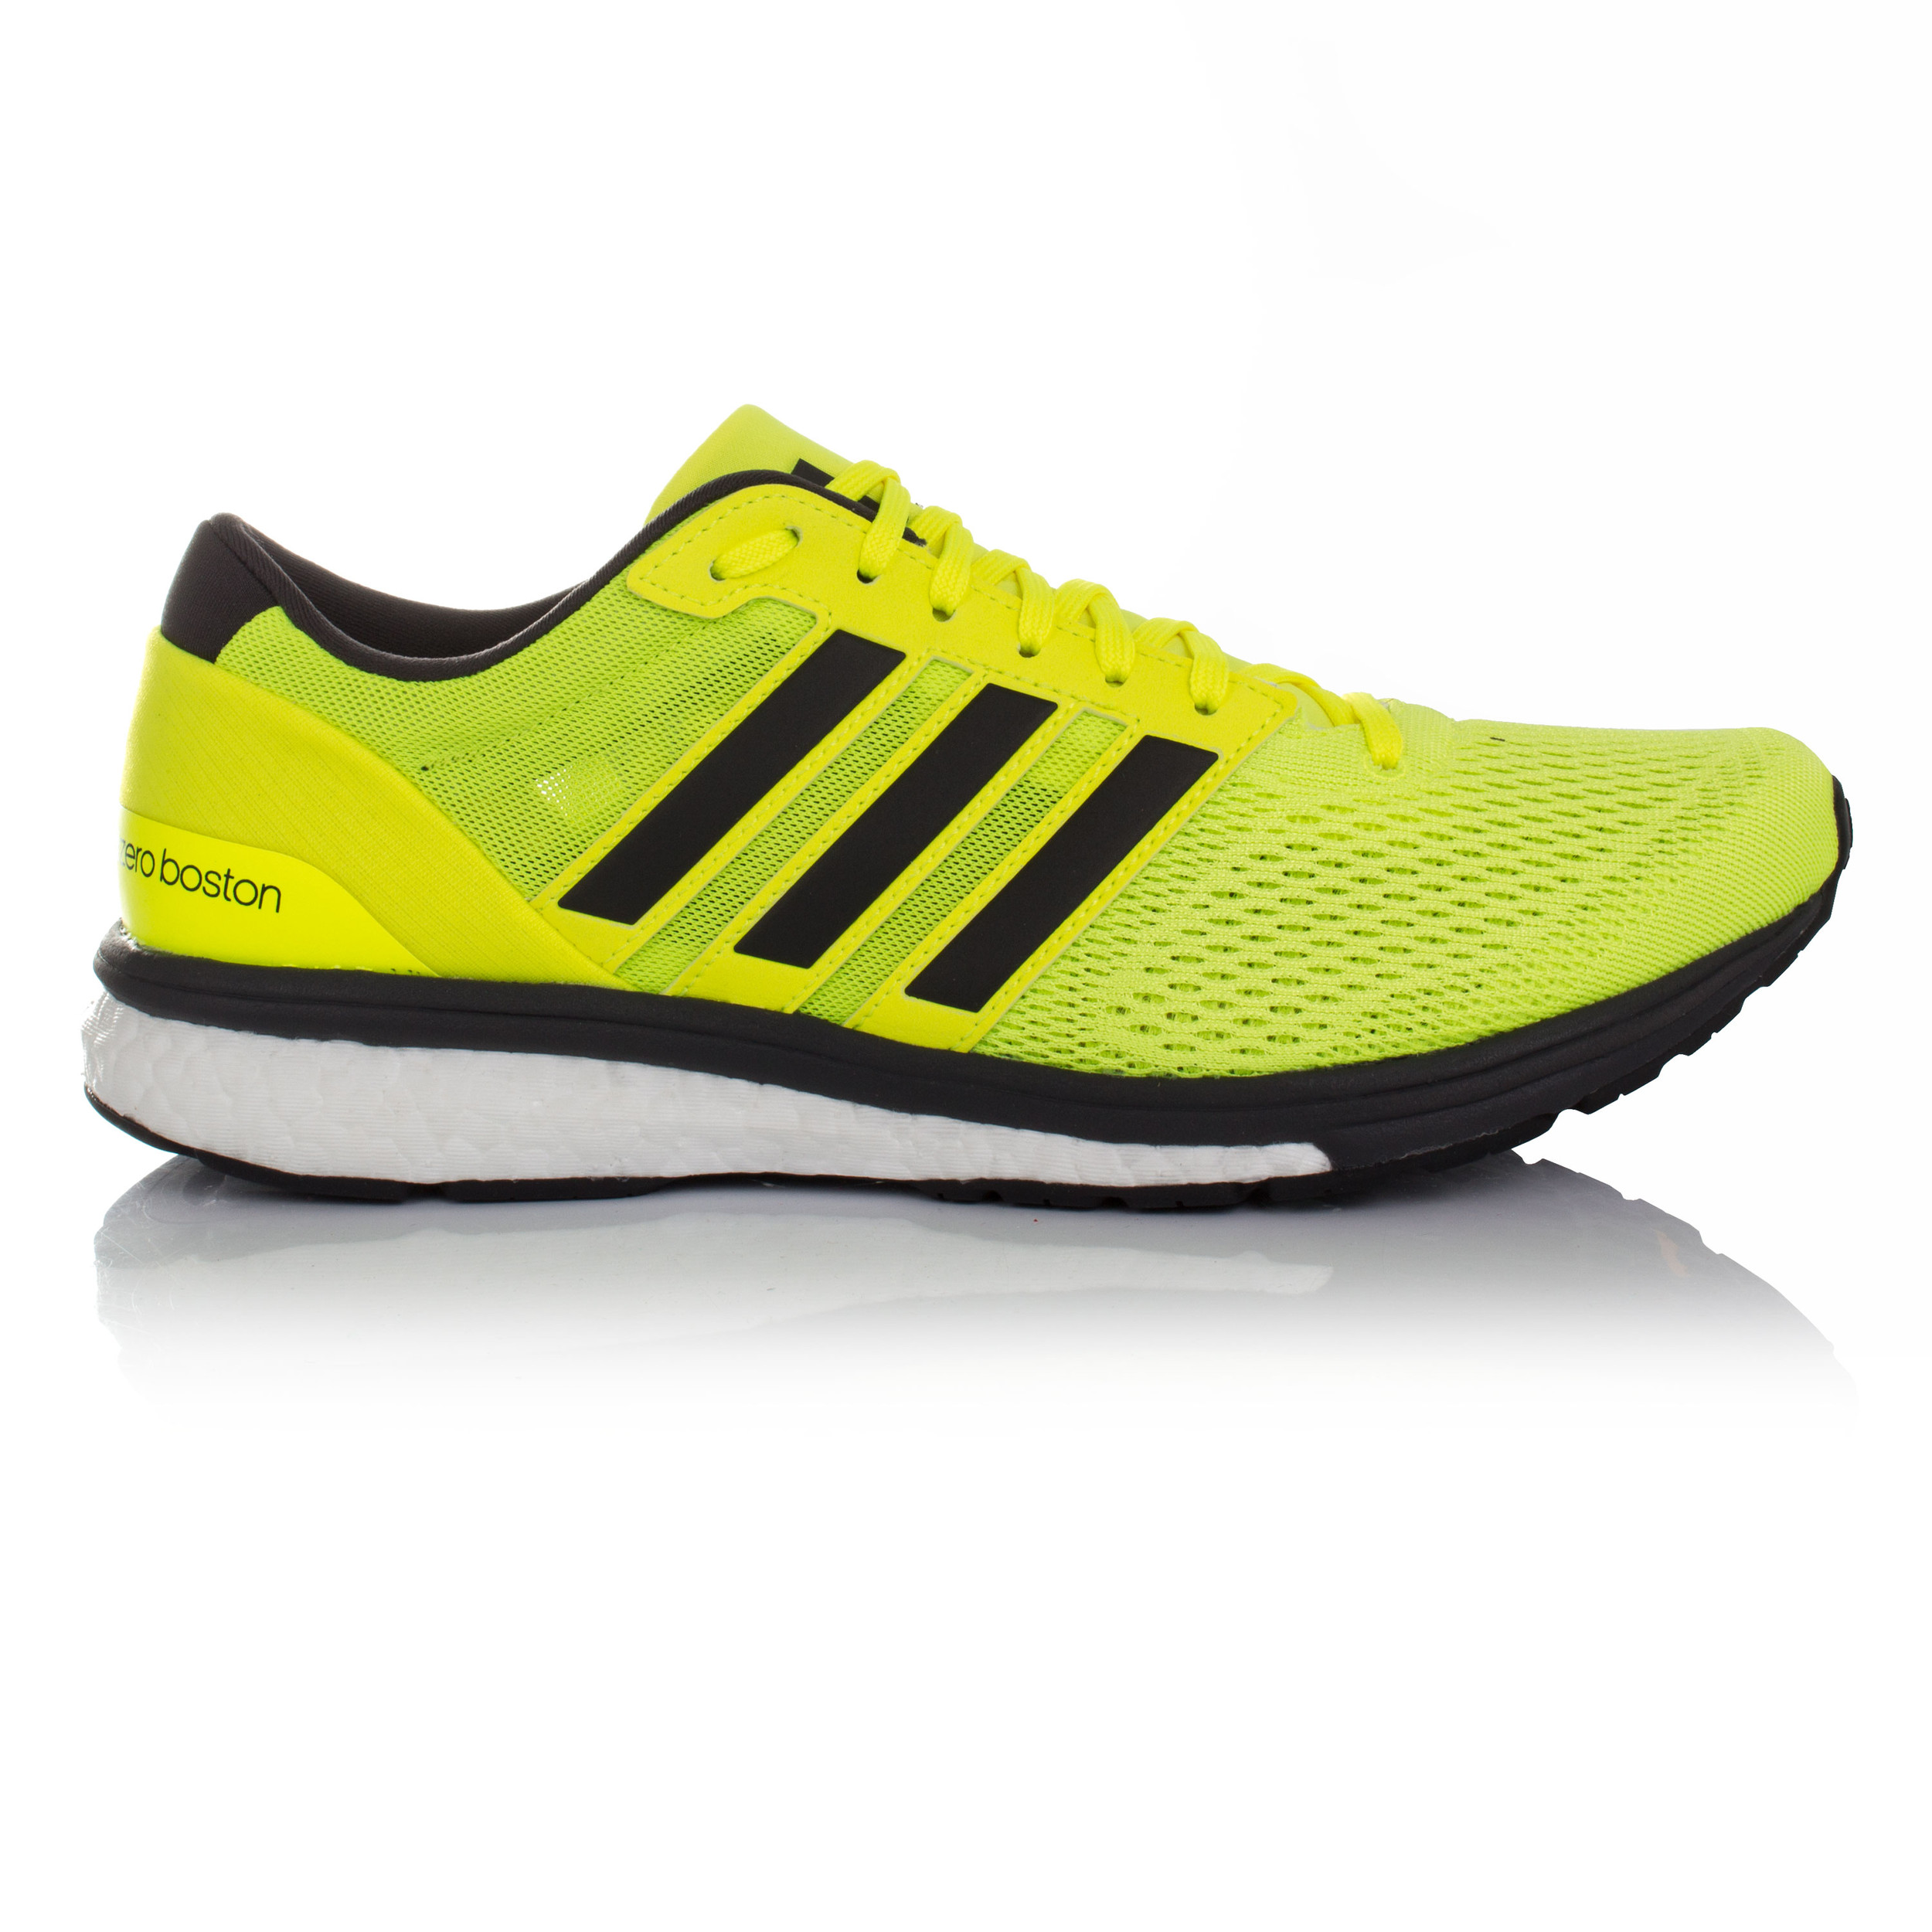 Adidas-Adizero-Boston-6-Mens-Yellow-Running-Sports-